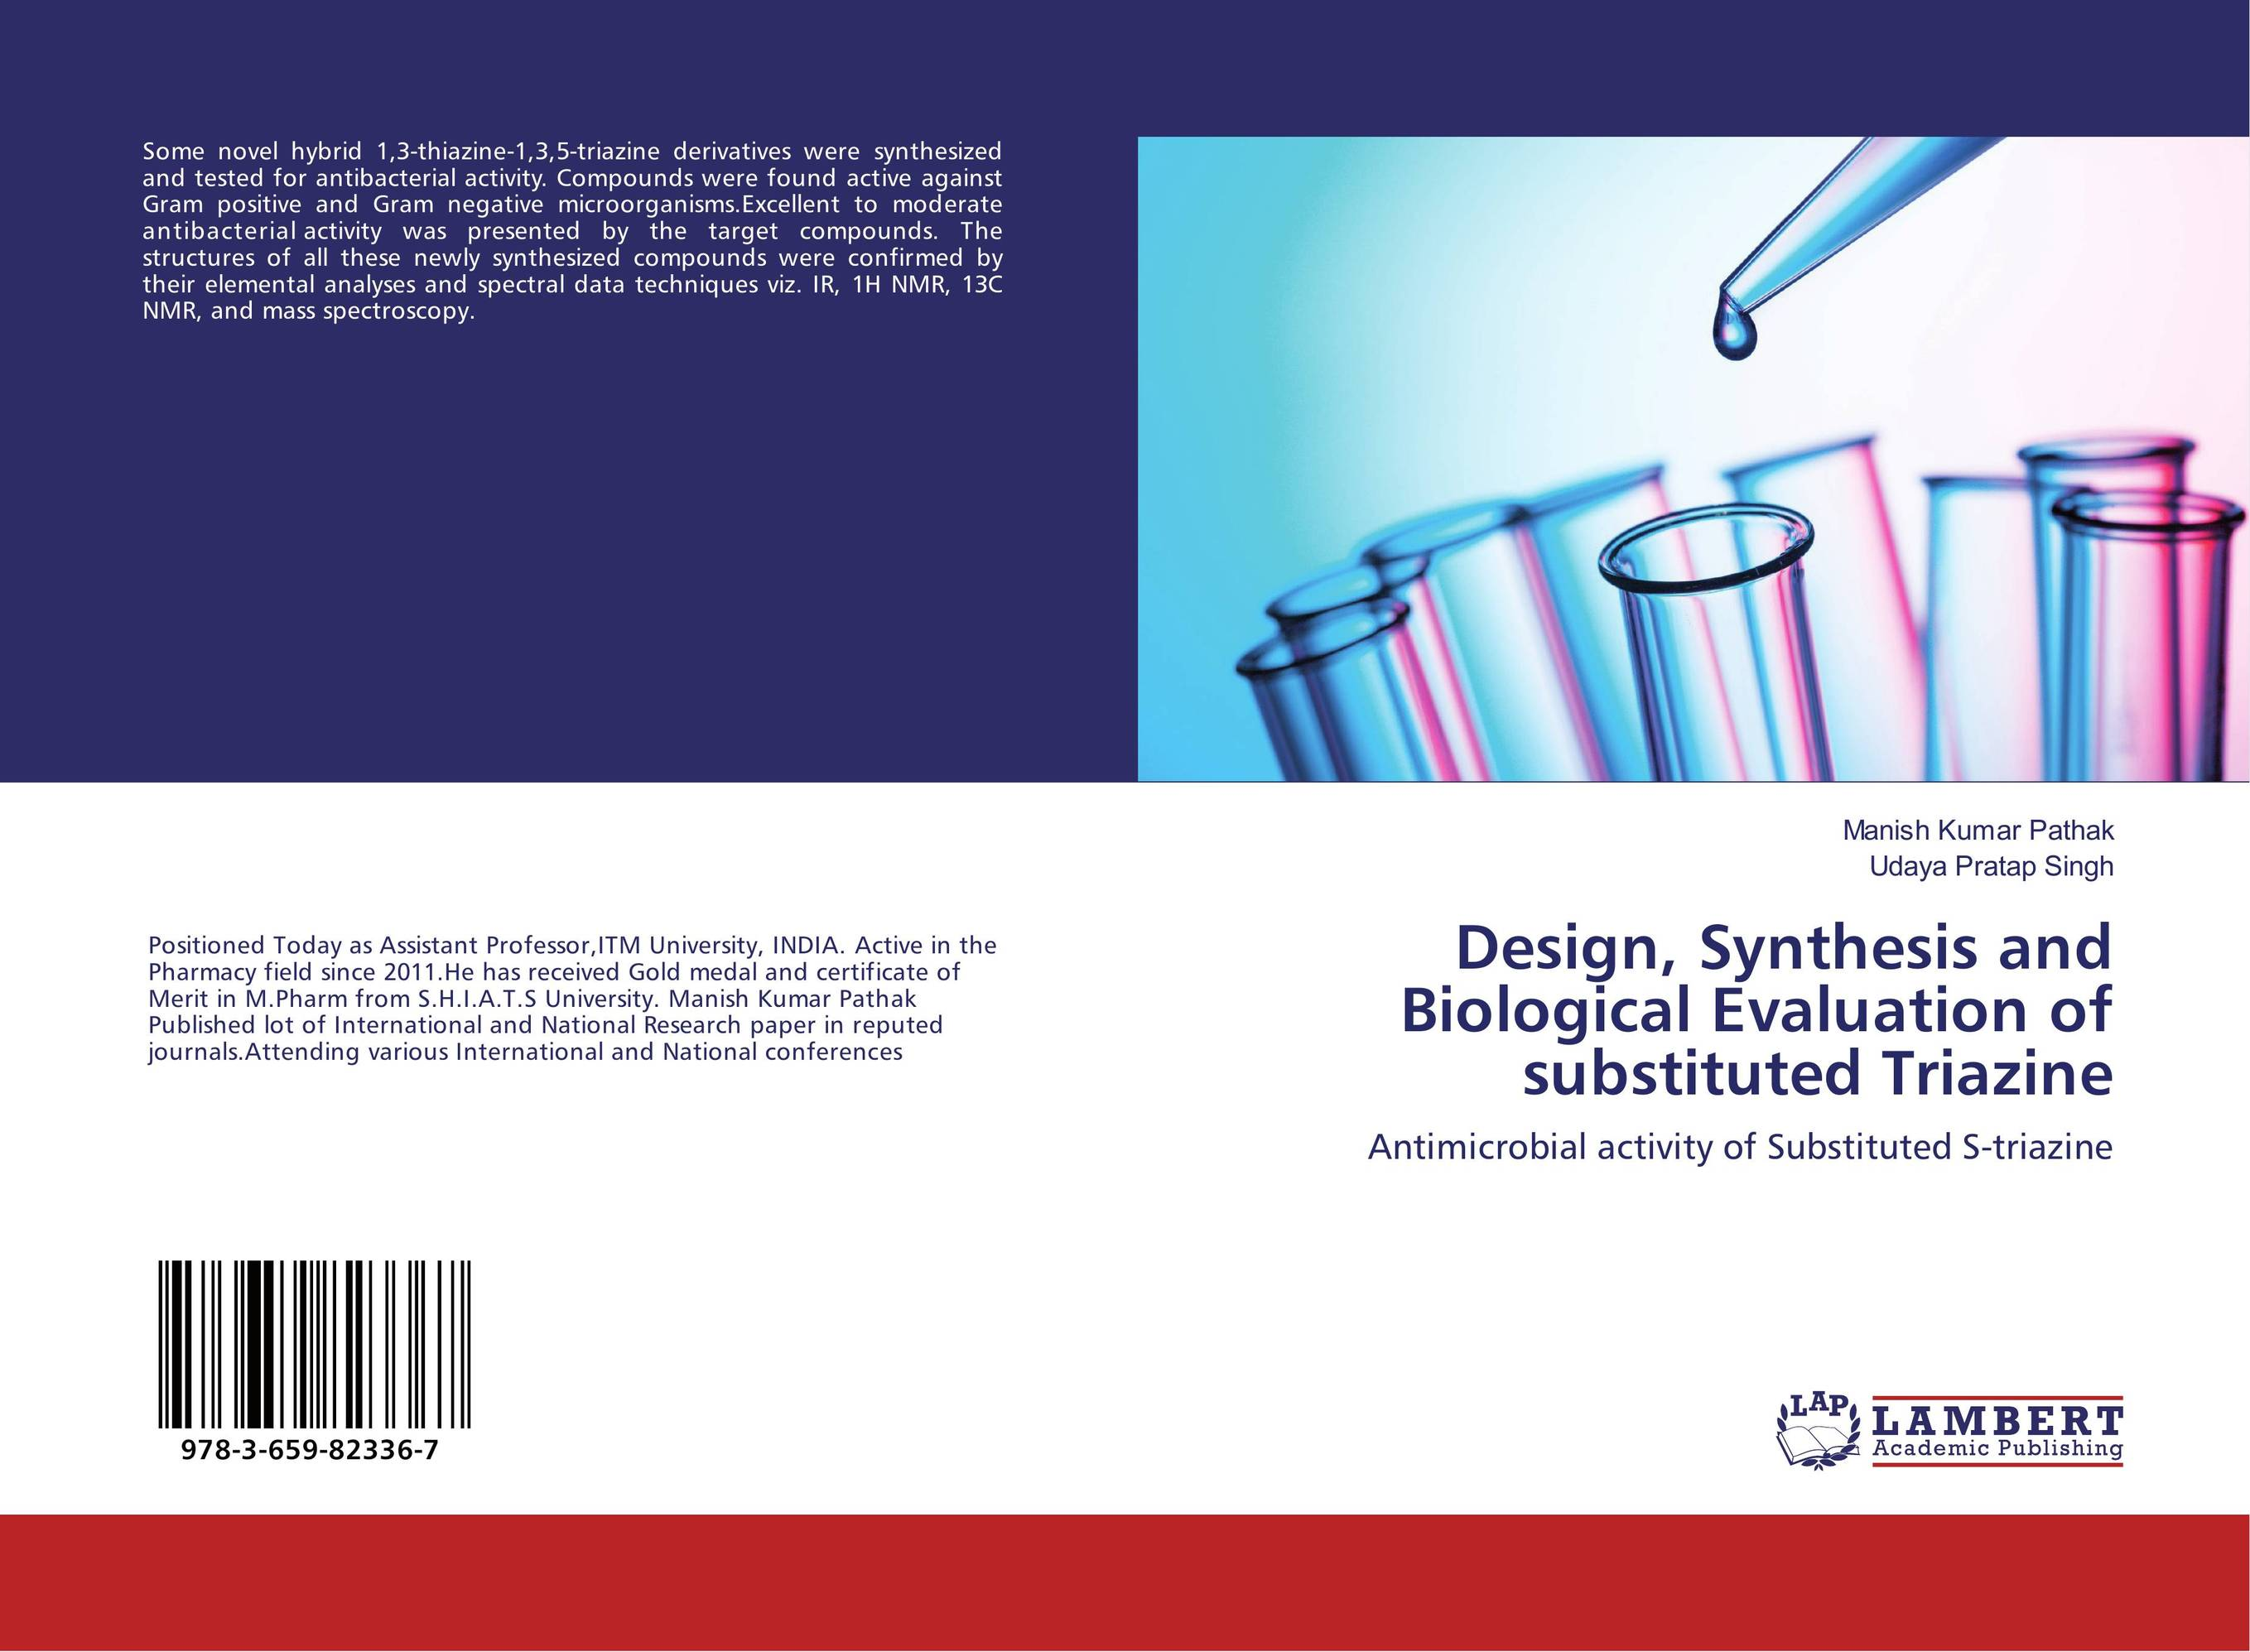 Design, Synthesis and Biological Evaluation of substituted Triazine купить